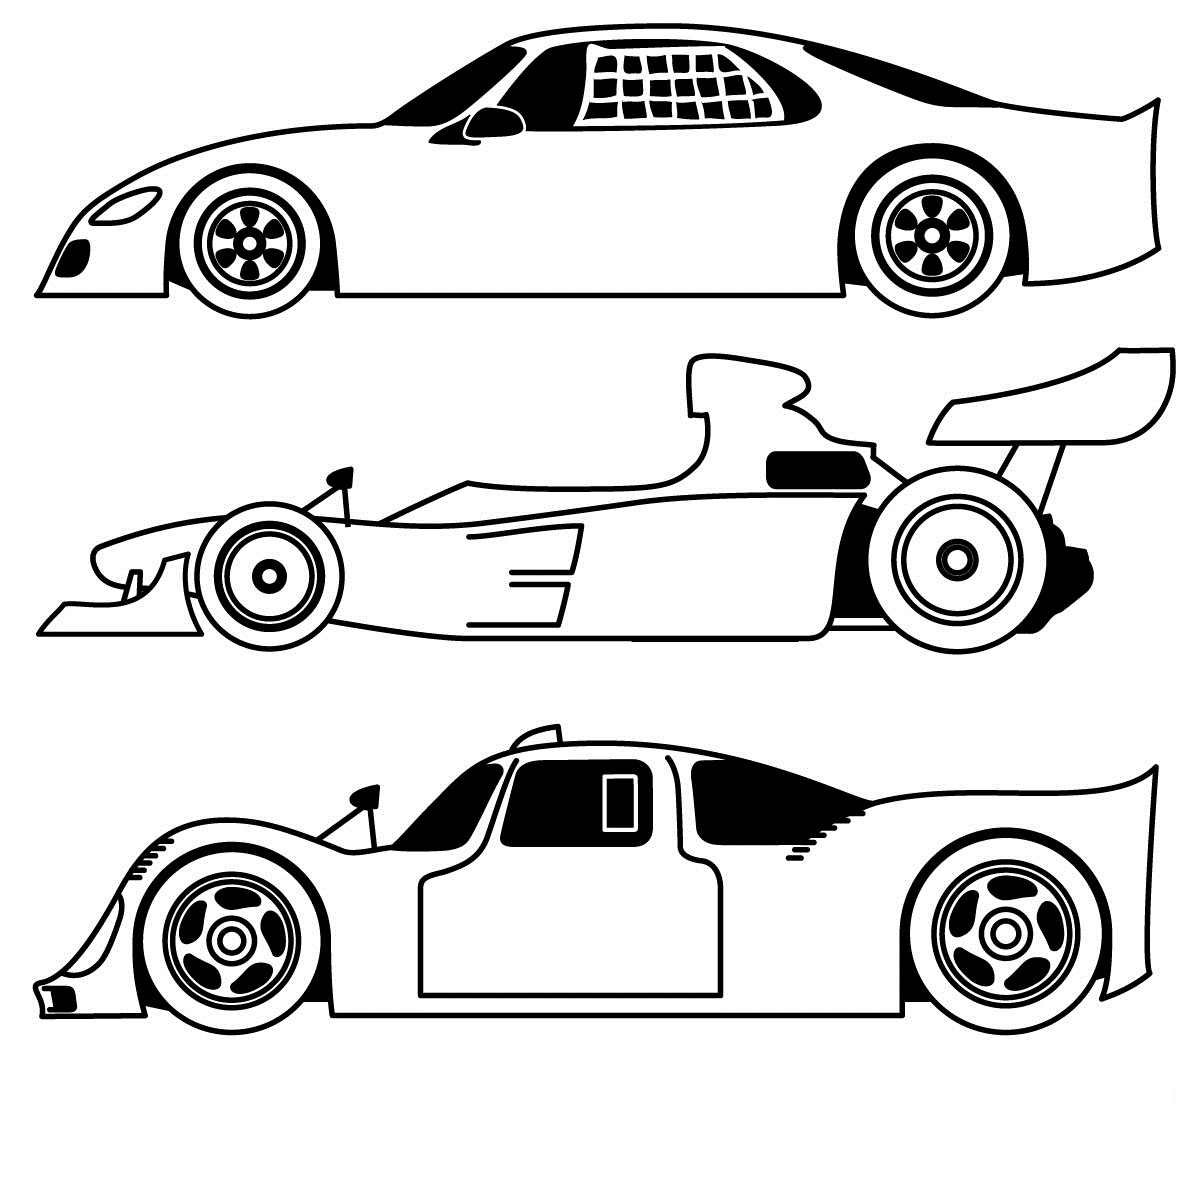 colouring in pictures of cars cars free to color for kids cars kids coloring pages cars pictures colouring of in